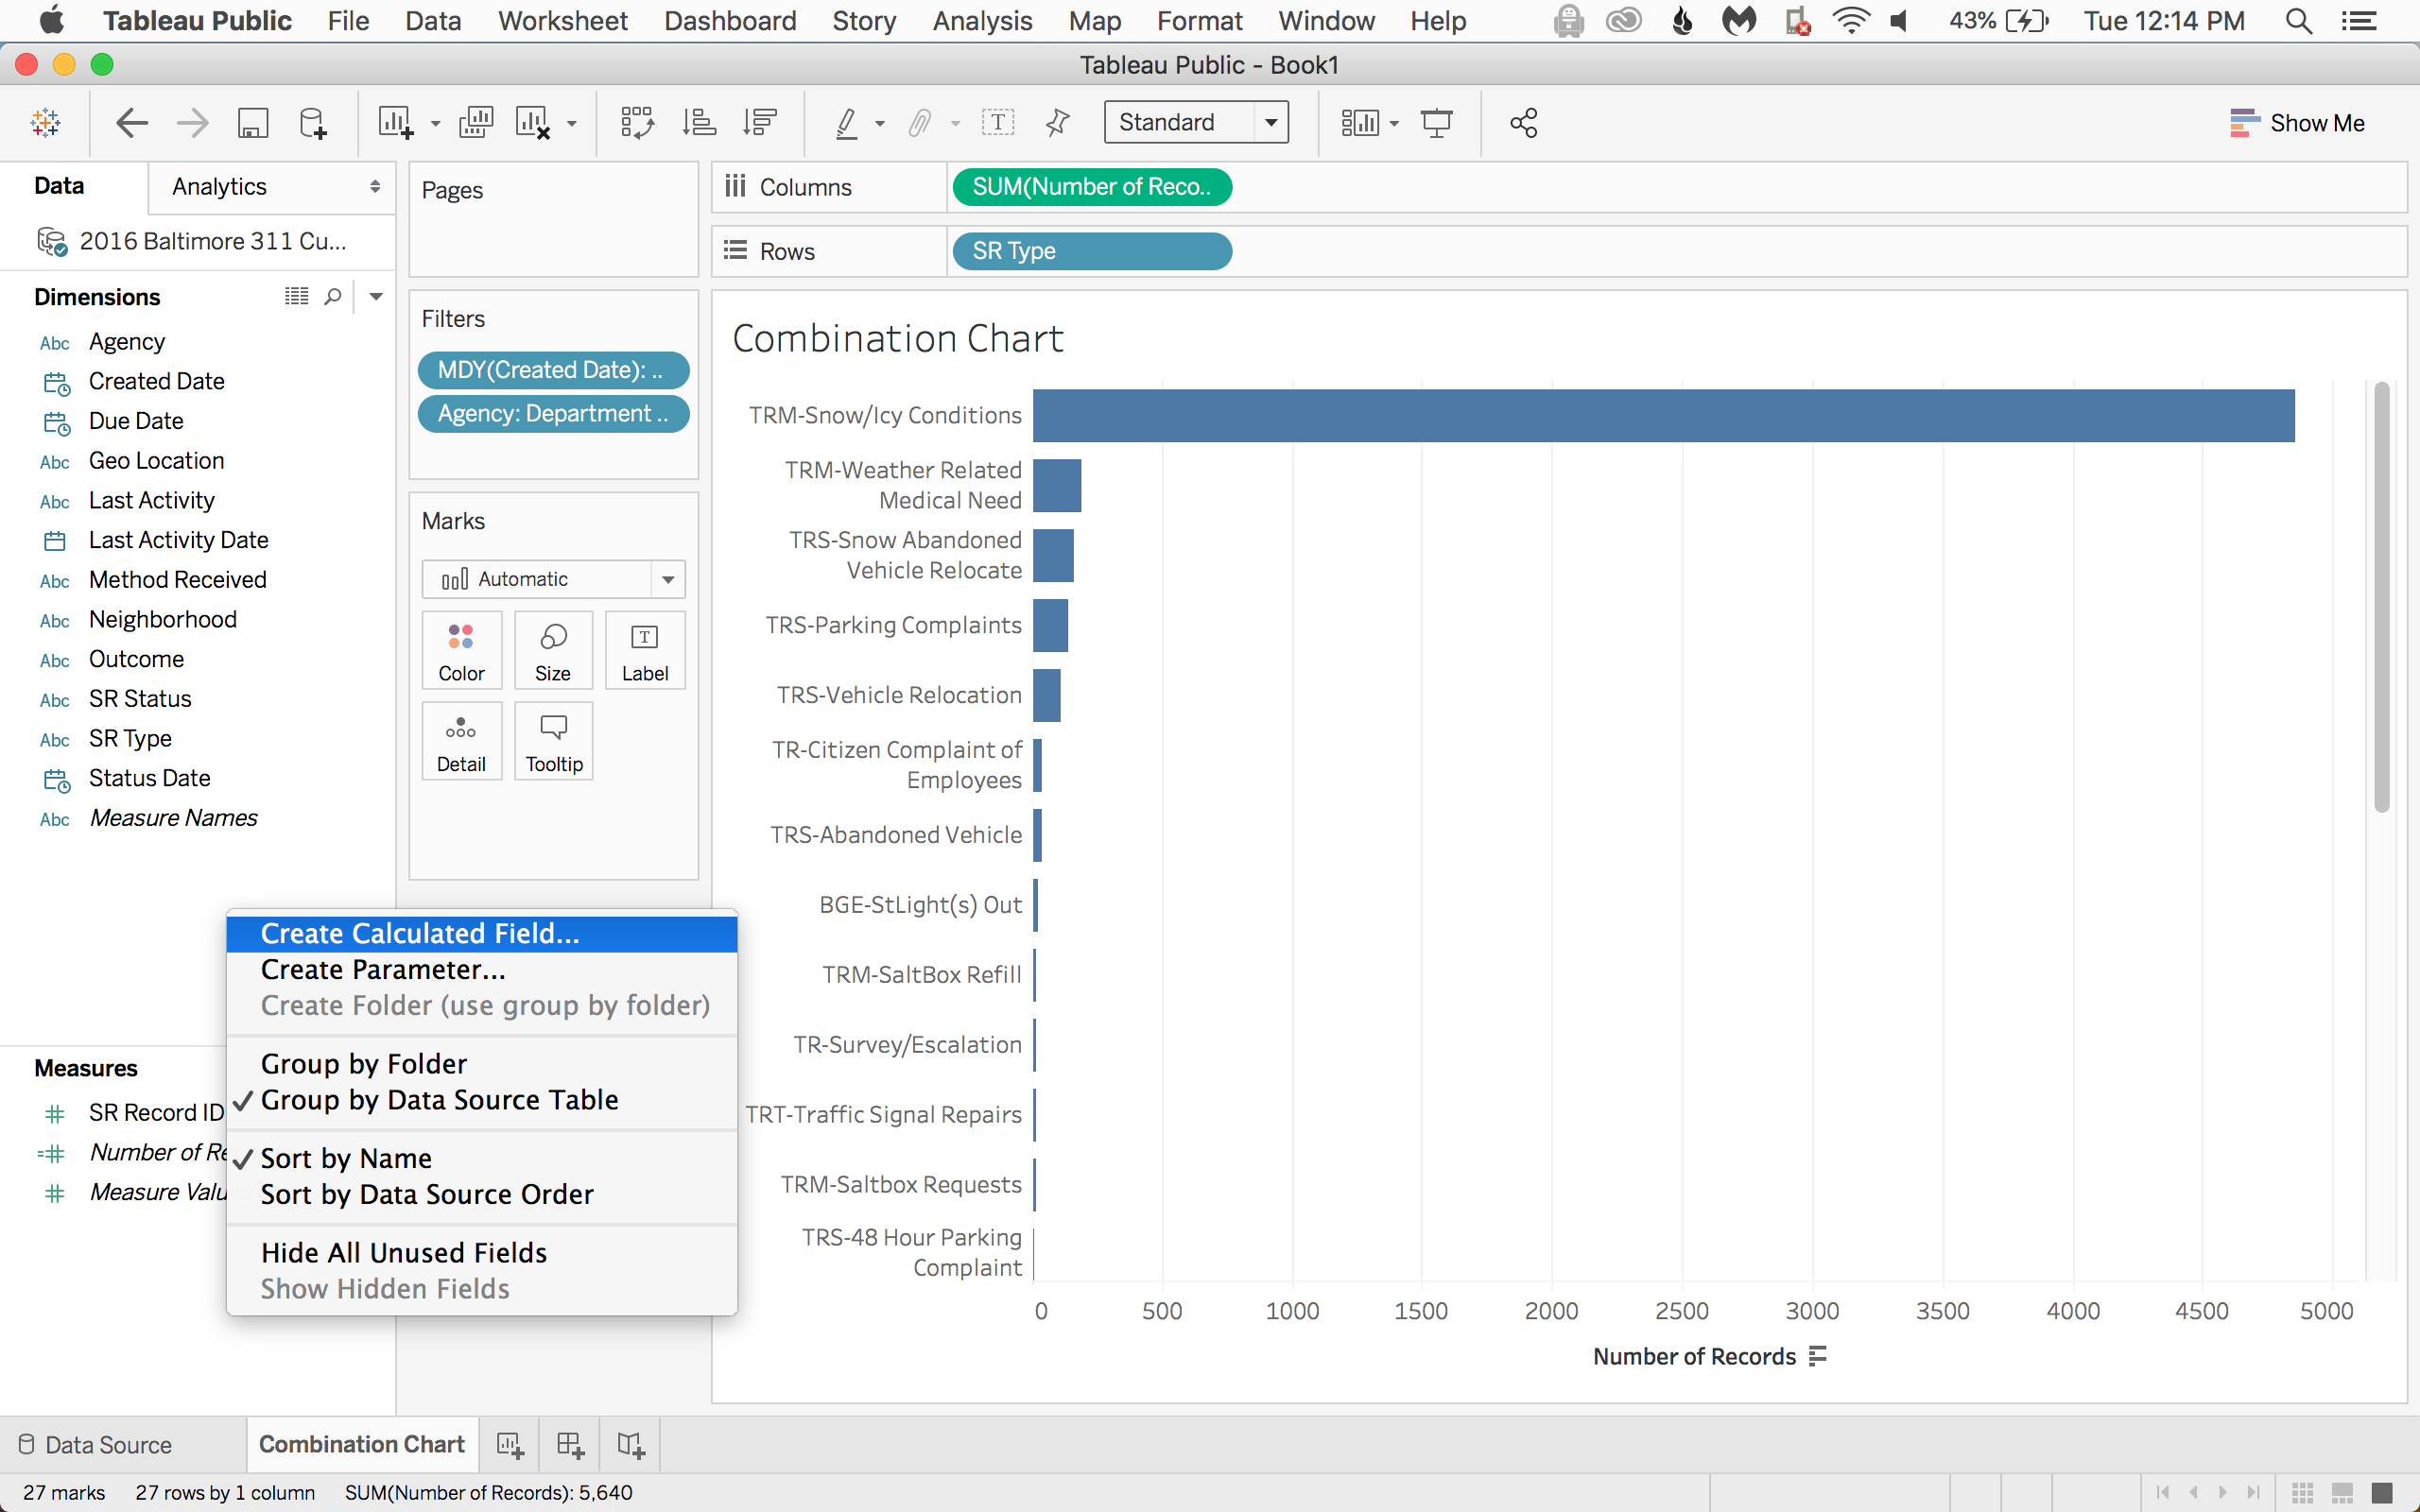 Now for the dots! Right click in a blank section of the data pane and select Create Calculated Field...